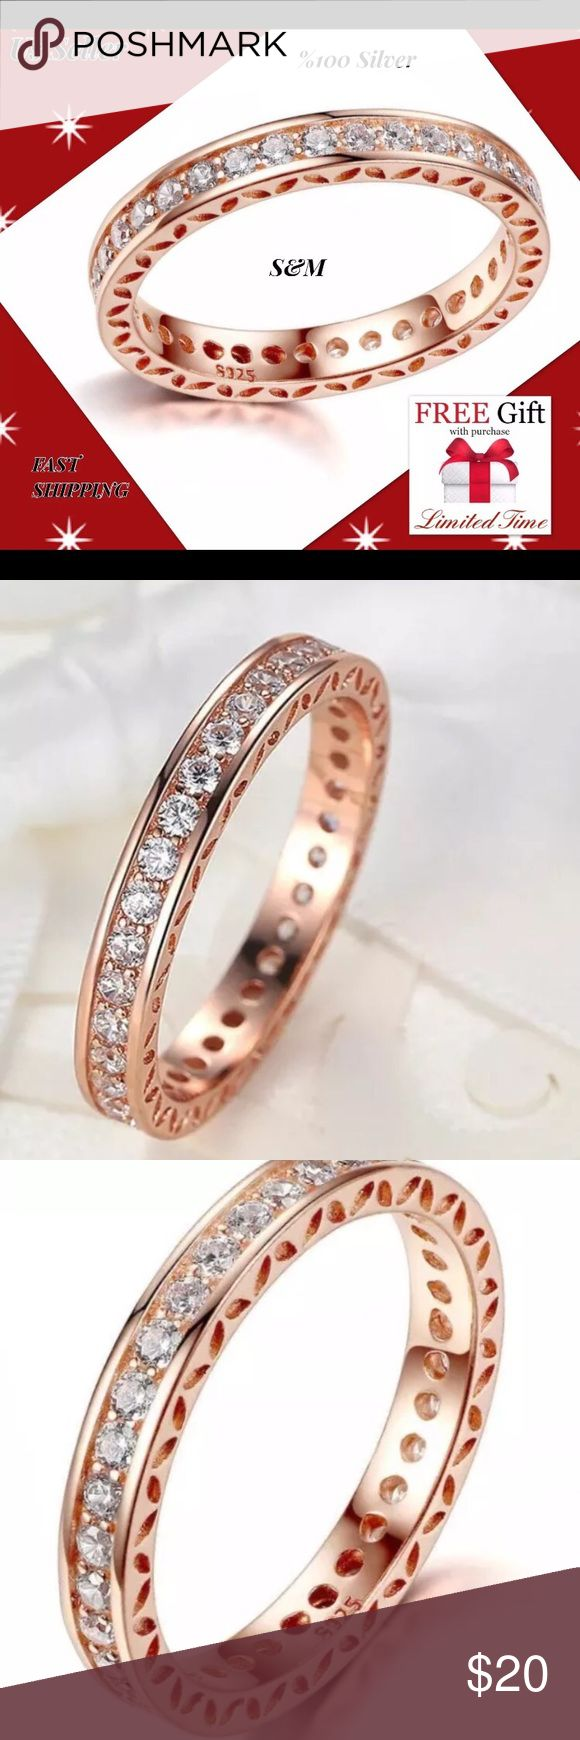 925 sterling silver live ring band size 8 Feature 100% Brand New Model Number:YLPA7215 Material: 925 Silver AAA Zircon Crystal  Wearing Occasion: Wedding/ Engagement/ Anniversary/ Propose/ Party/ Gift Gift for: Girl friend/ Wife/ Mother/ Friends/Sister  We are the new seller but best seller. Now we have a limited time big promotion.  You can use or give gift your mom, dad, friend, sister... When you buy this item Nano technolog Microfiber claening Cloth $19.99 value is free for you! Jewelry…